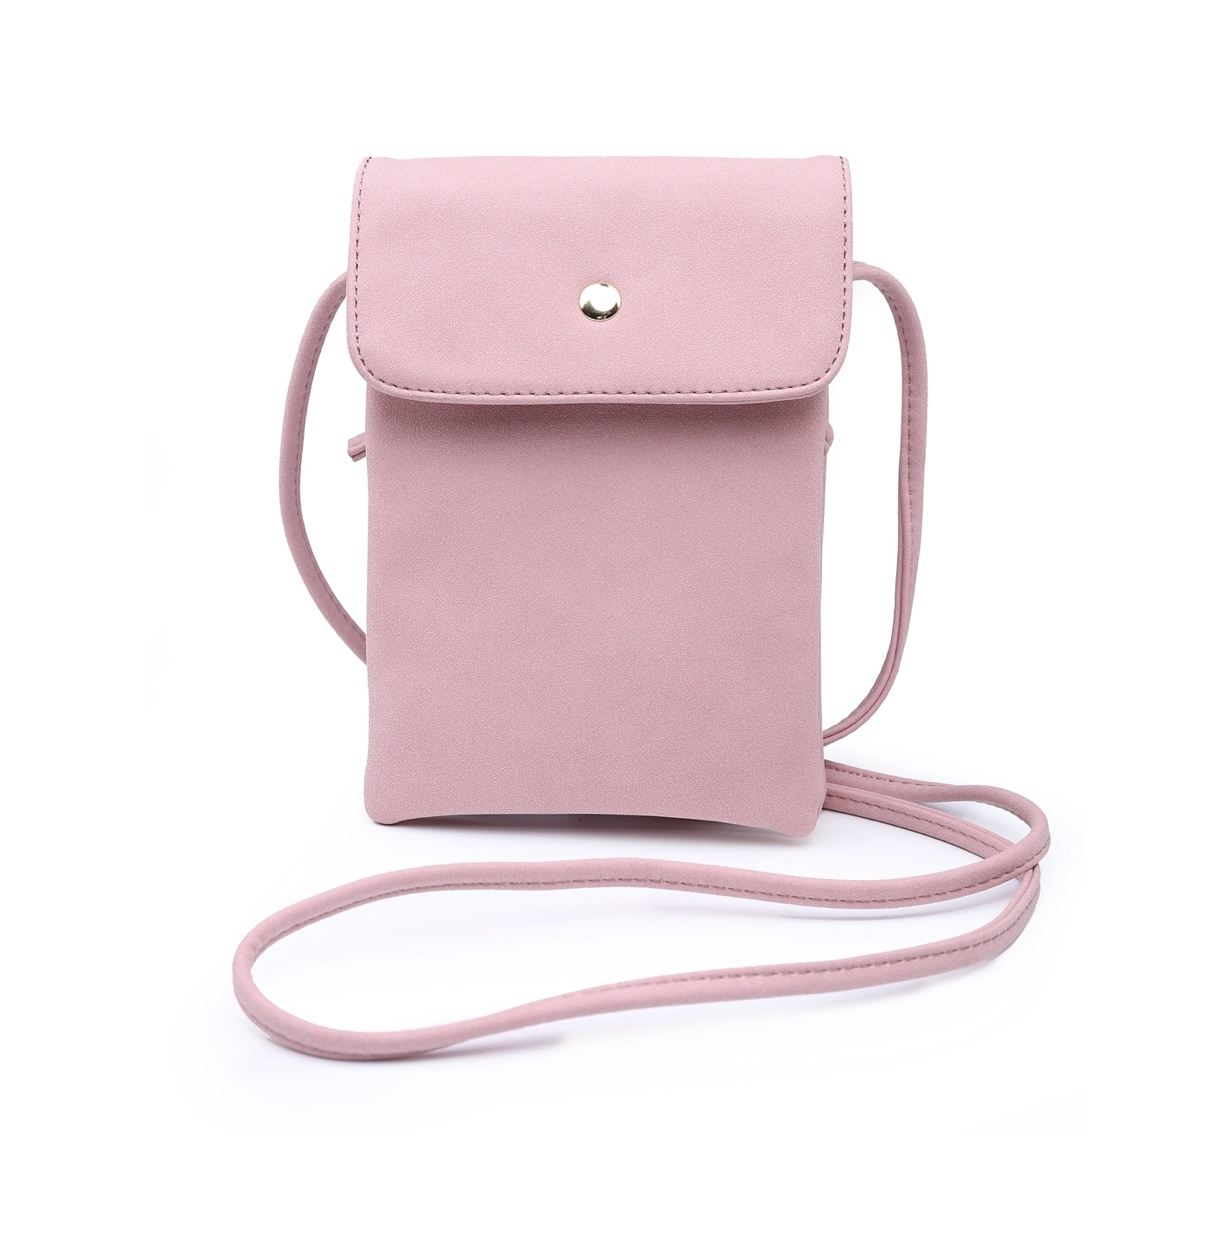 Hale Cross Body Phone Bag. Available in 4 Colours